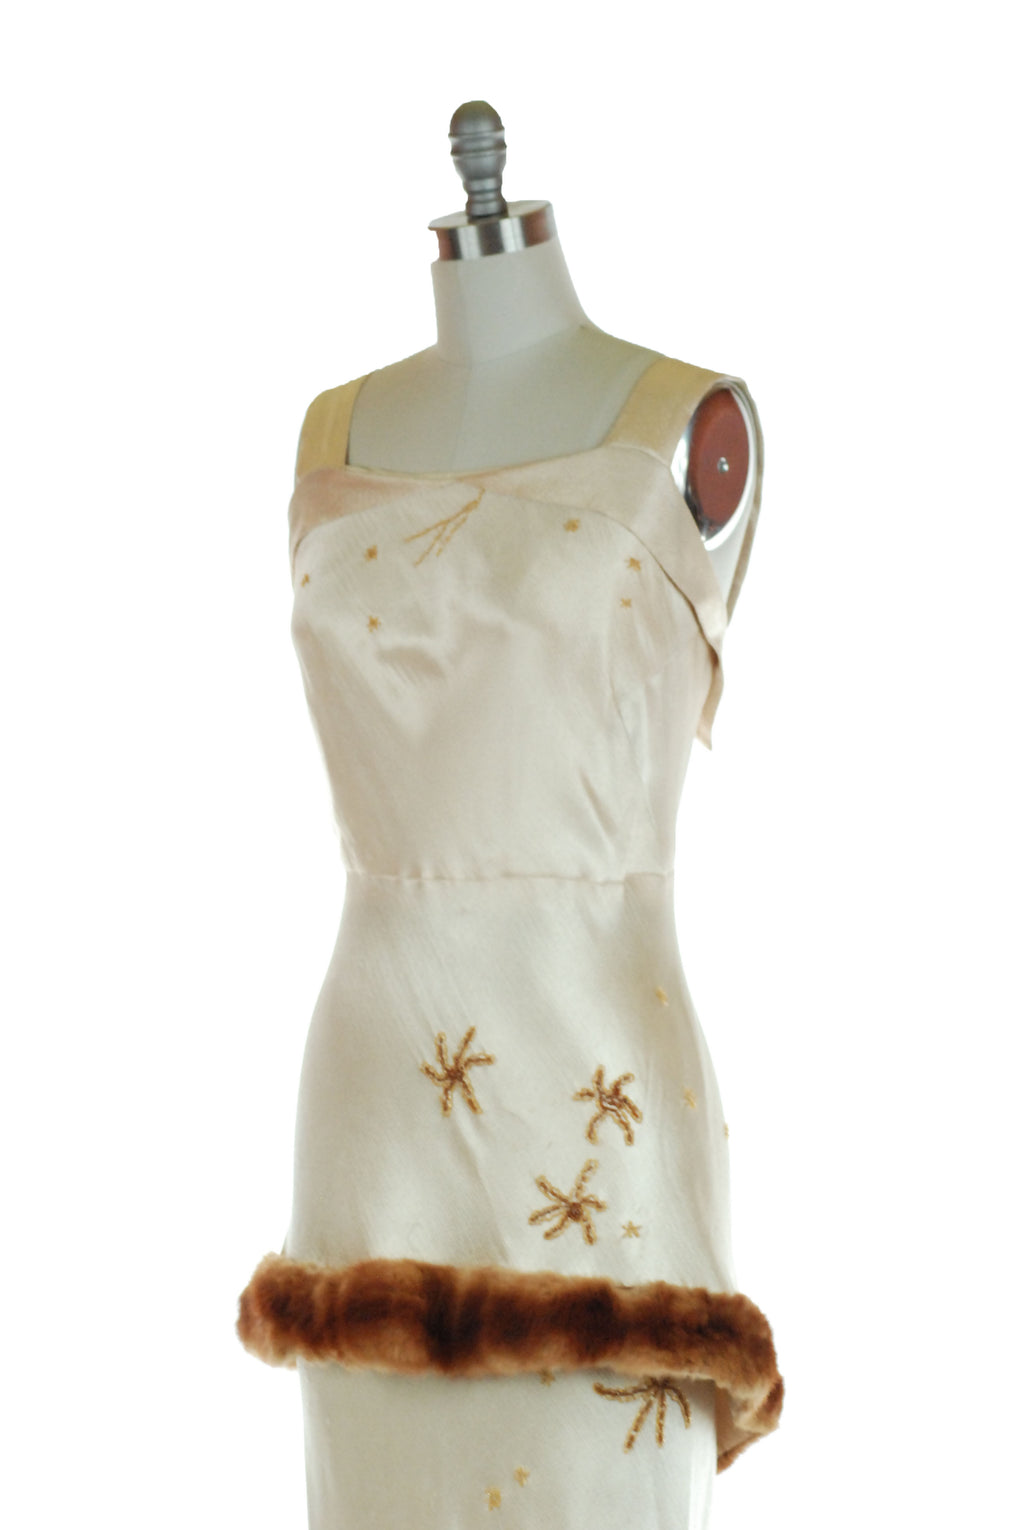 Exquisite 1930s Hattie Carnegie Bias Cut Designer Dress with Beaded Stars and Fur Trim NRA Tag